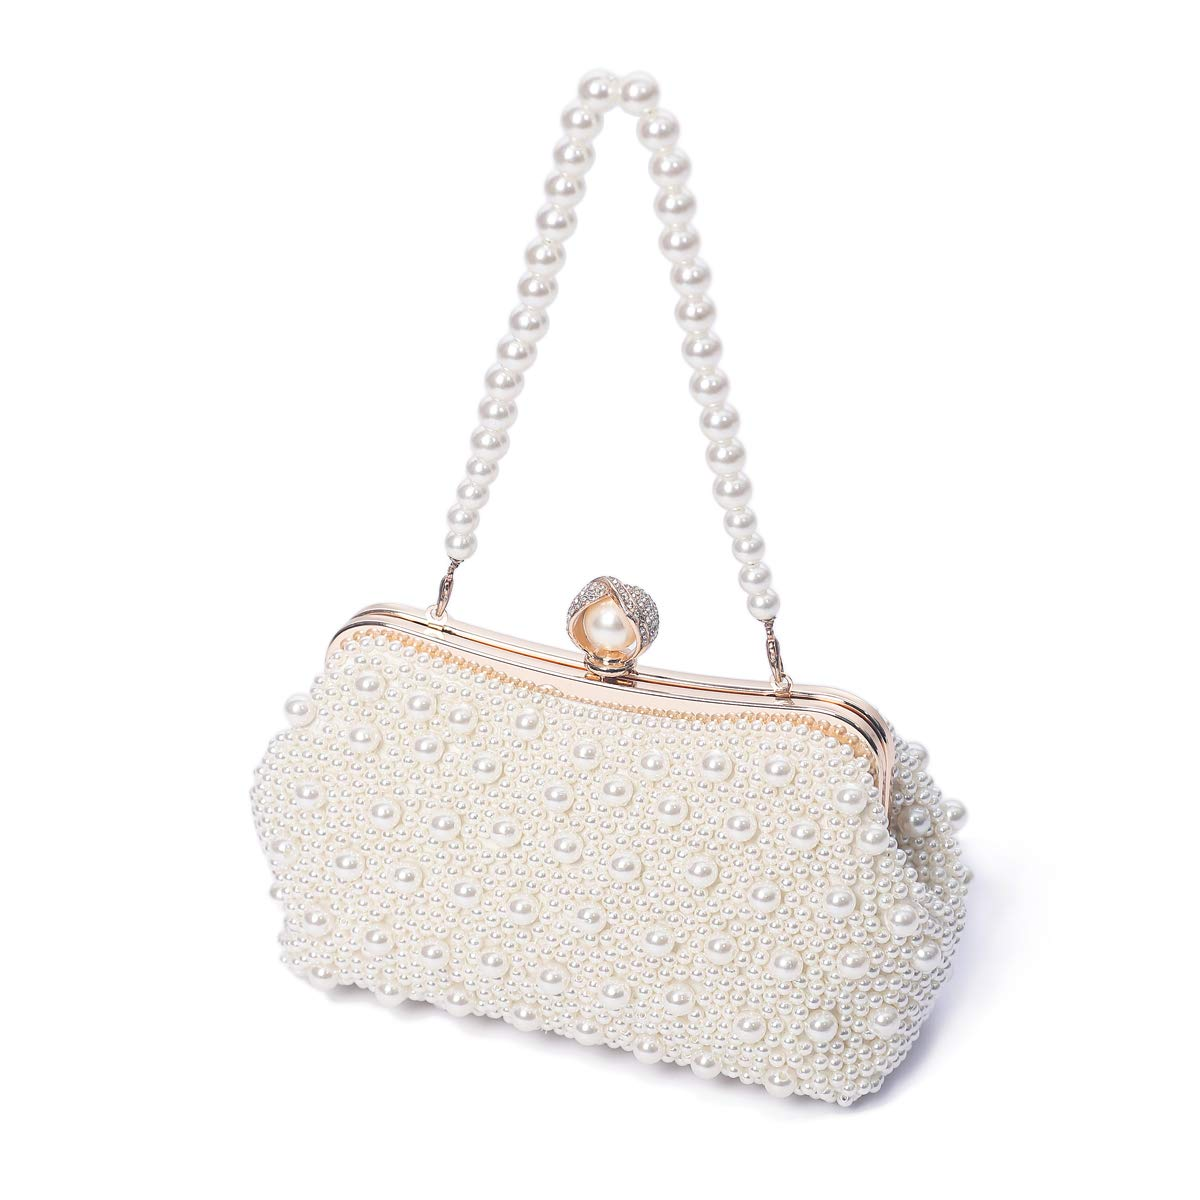 TOIHSUAN Women's Pearl Beaded Cream Evening Cluthes Bags for Wedding-with shoulder strap